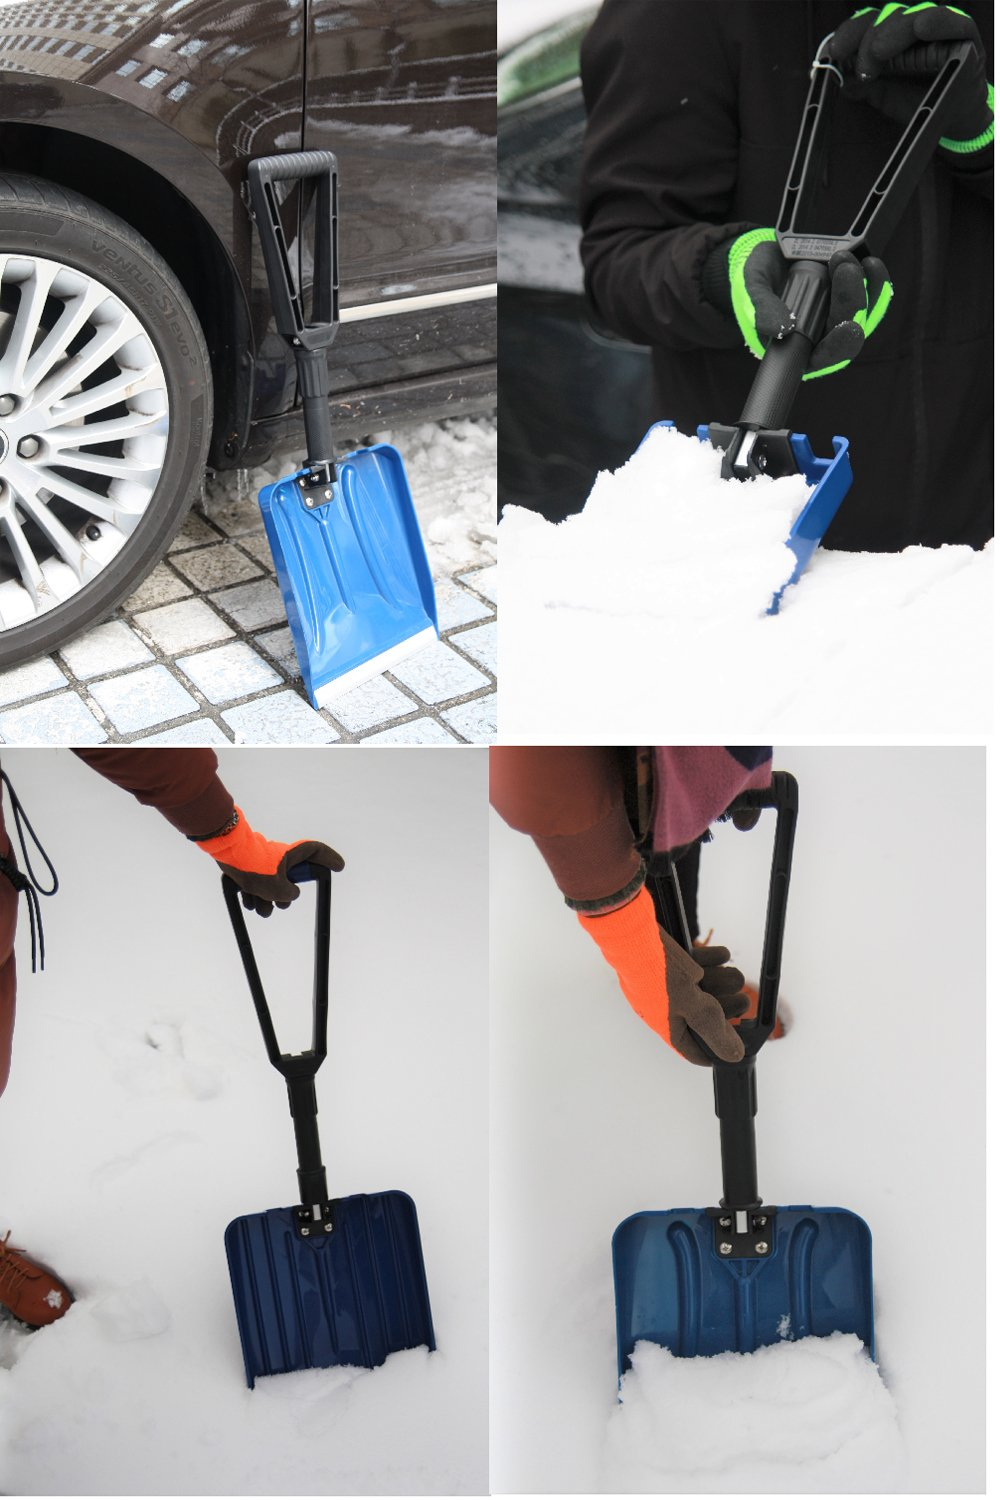 ORIENTOOLS Collapsible Folding Snow Shovel with Durable Aluminum Edge Blade (Blade 6'') by ORIENTOOLS (Image #7)